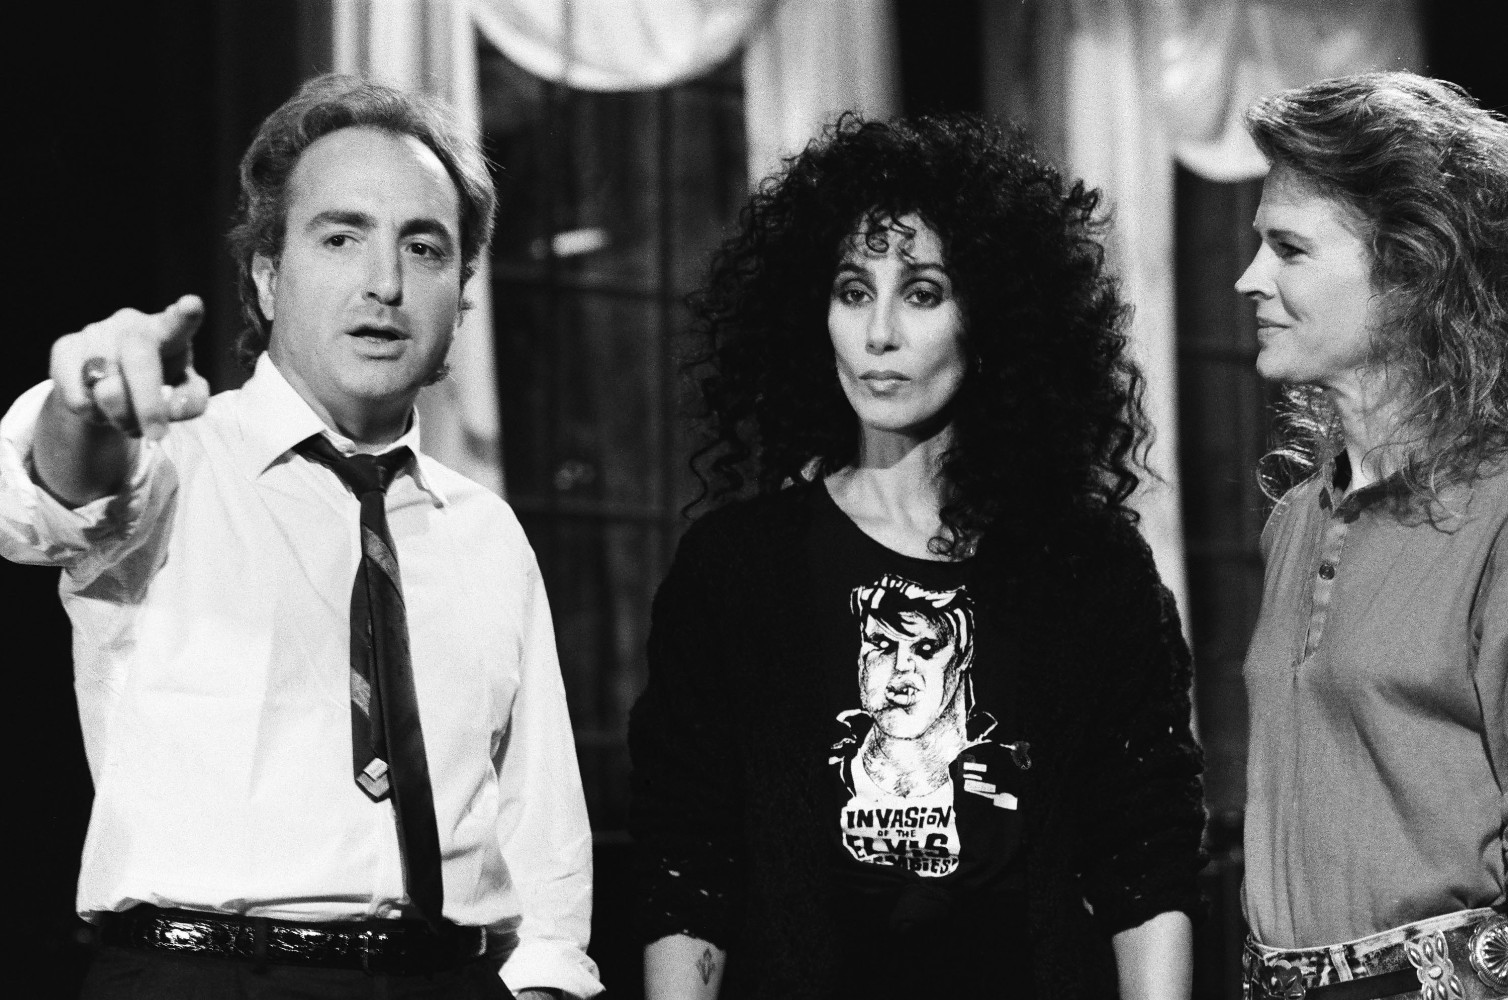 Lorne Michaels Talks Snl Sinead O Connor Wayne S World And More In Our 1993 Interview Lorne Michaels Talks I Snl I Sinead O Connor I Wayne S World I And More In Our 1993 Interview Spin